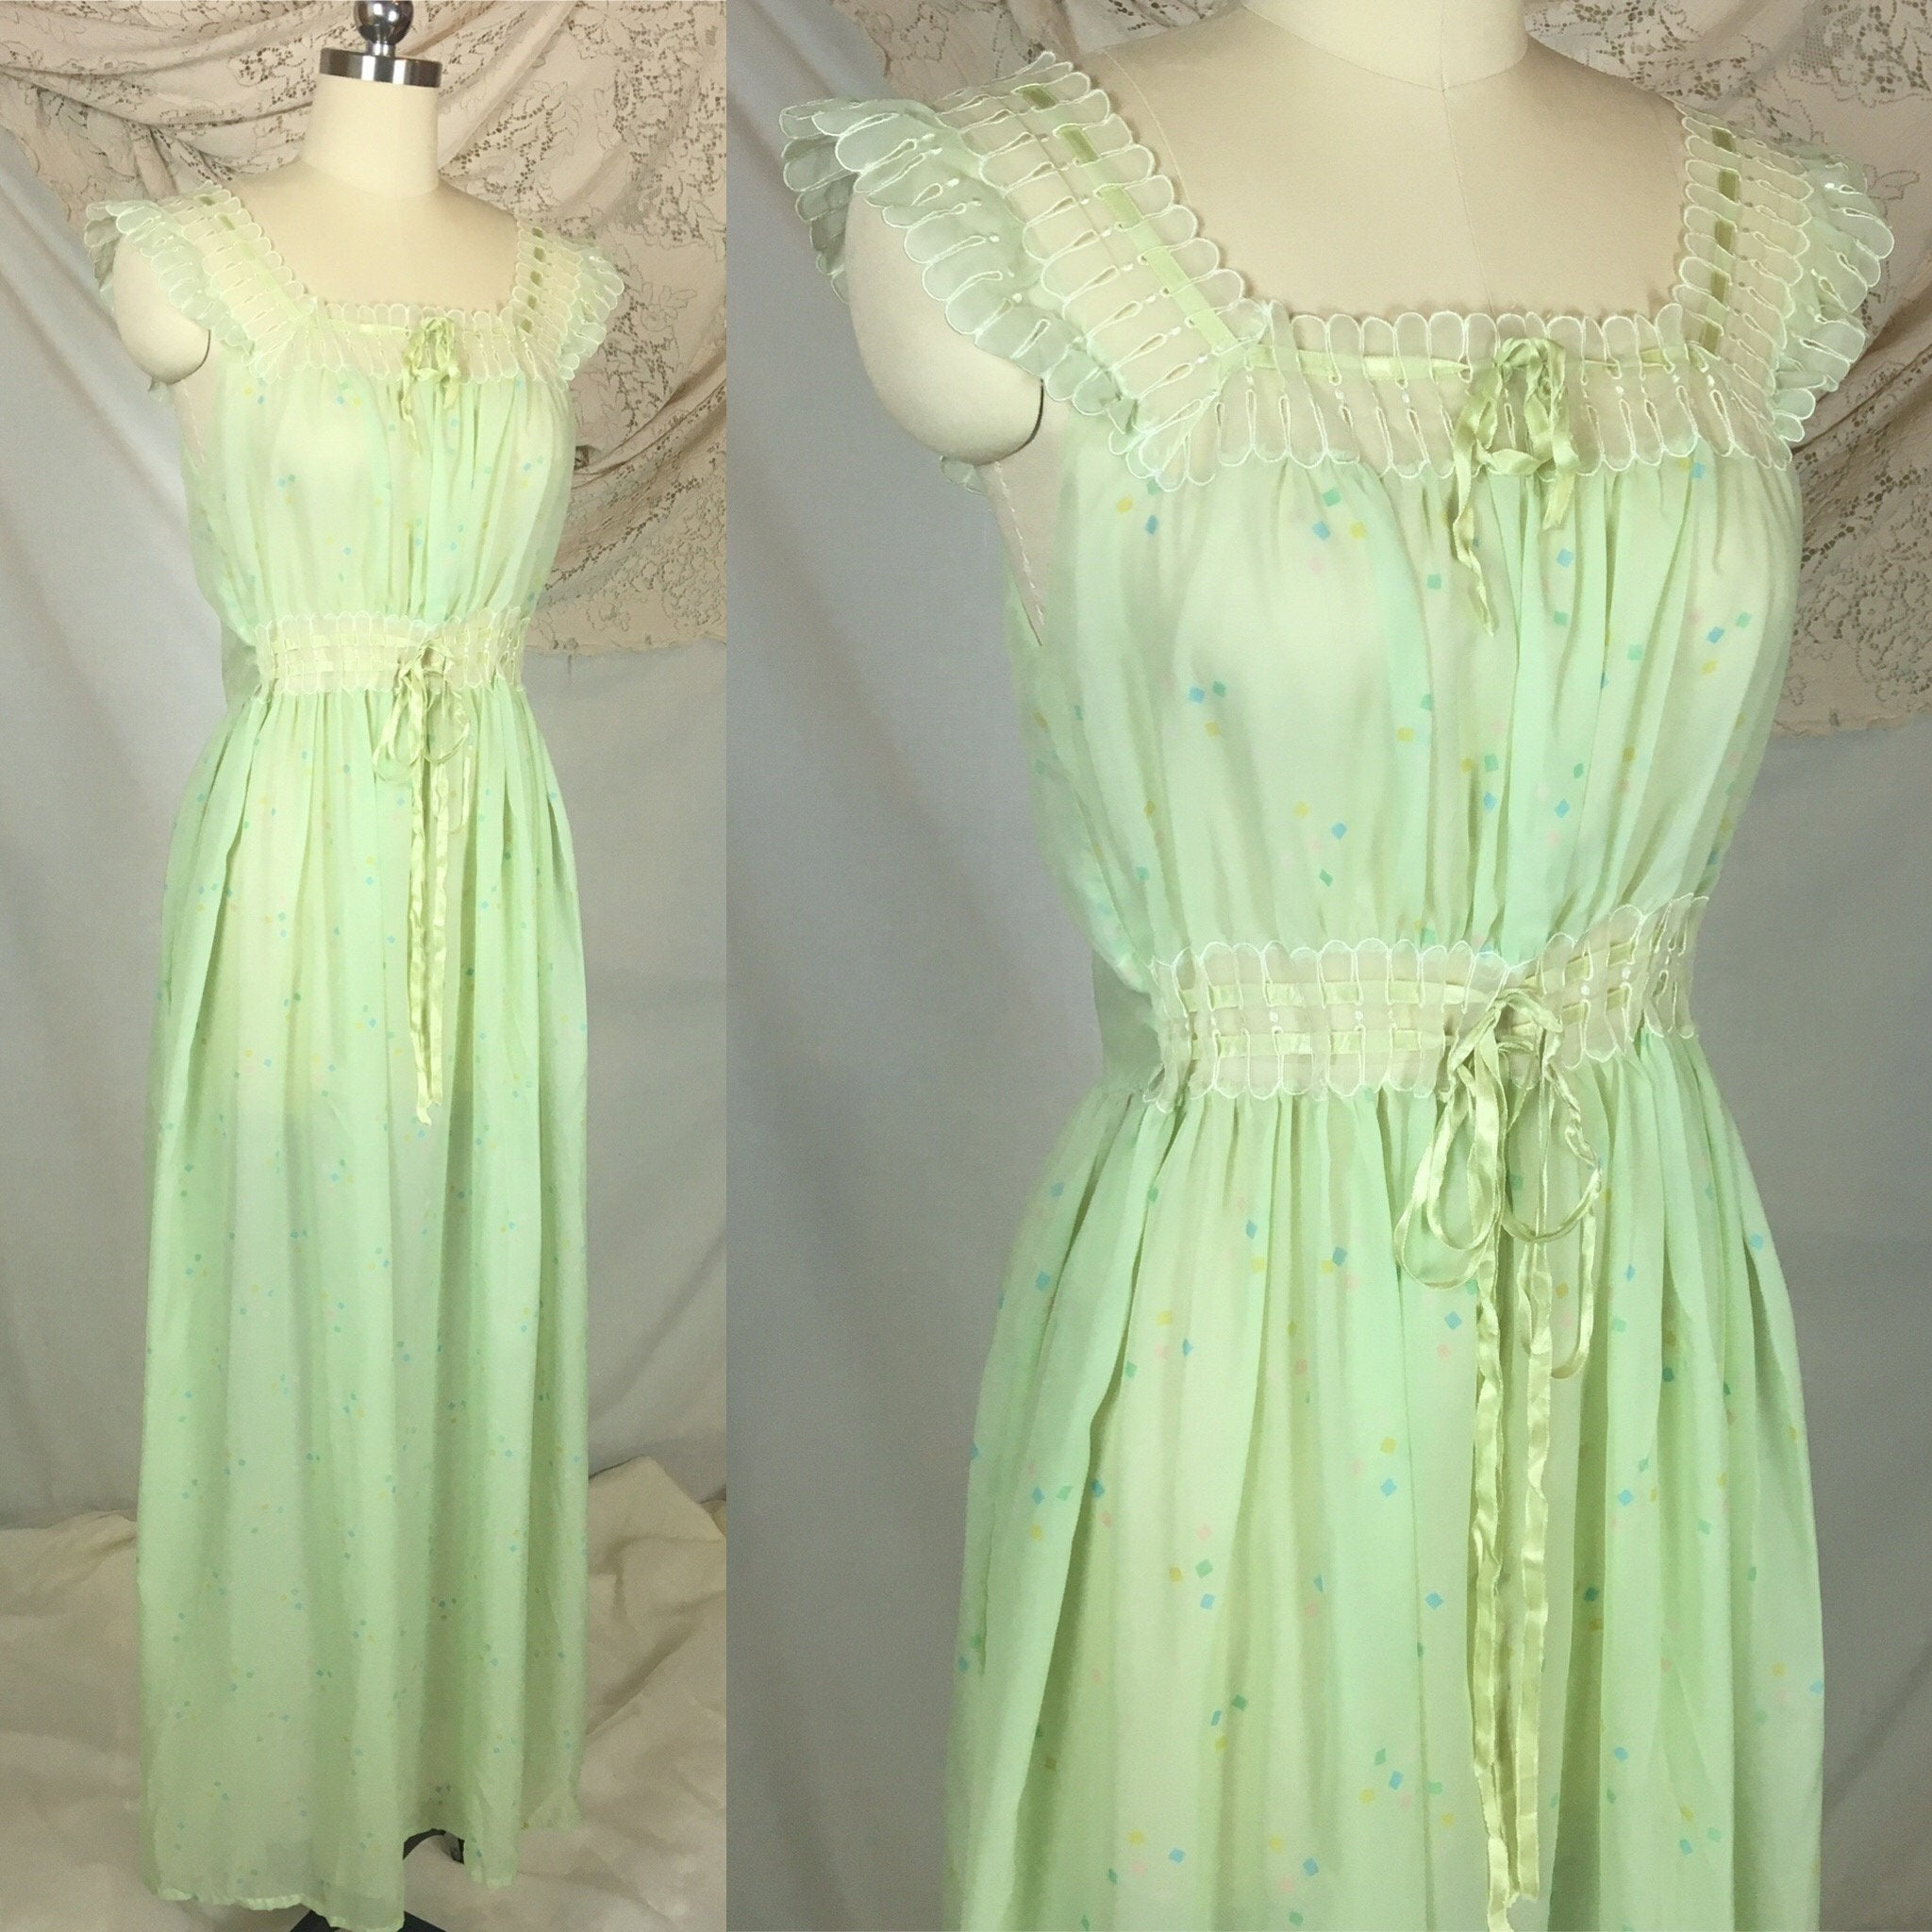 Vintage 1950's Nightgown | Sheer Pale Green Nylon Chiffon with Geometric Pattern & Adjustable Waist | Godfried | Size SM, MED - Daggers & Dames